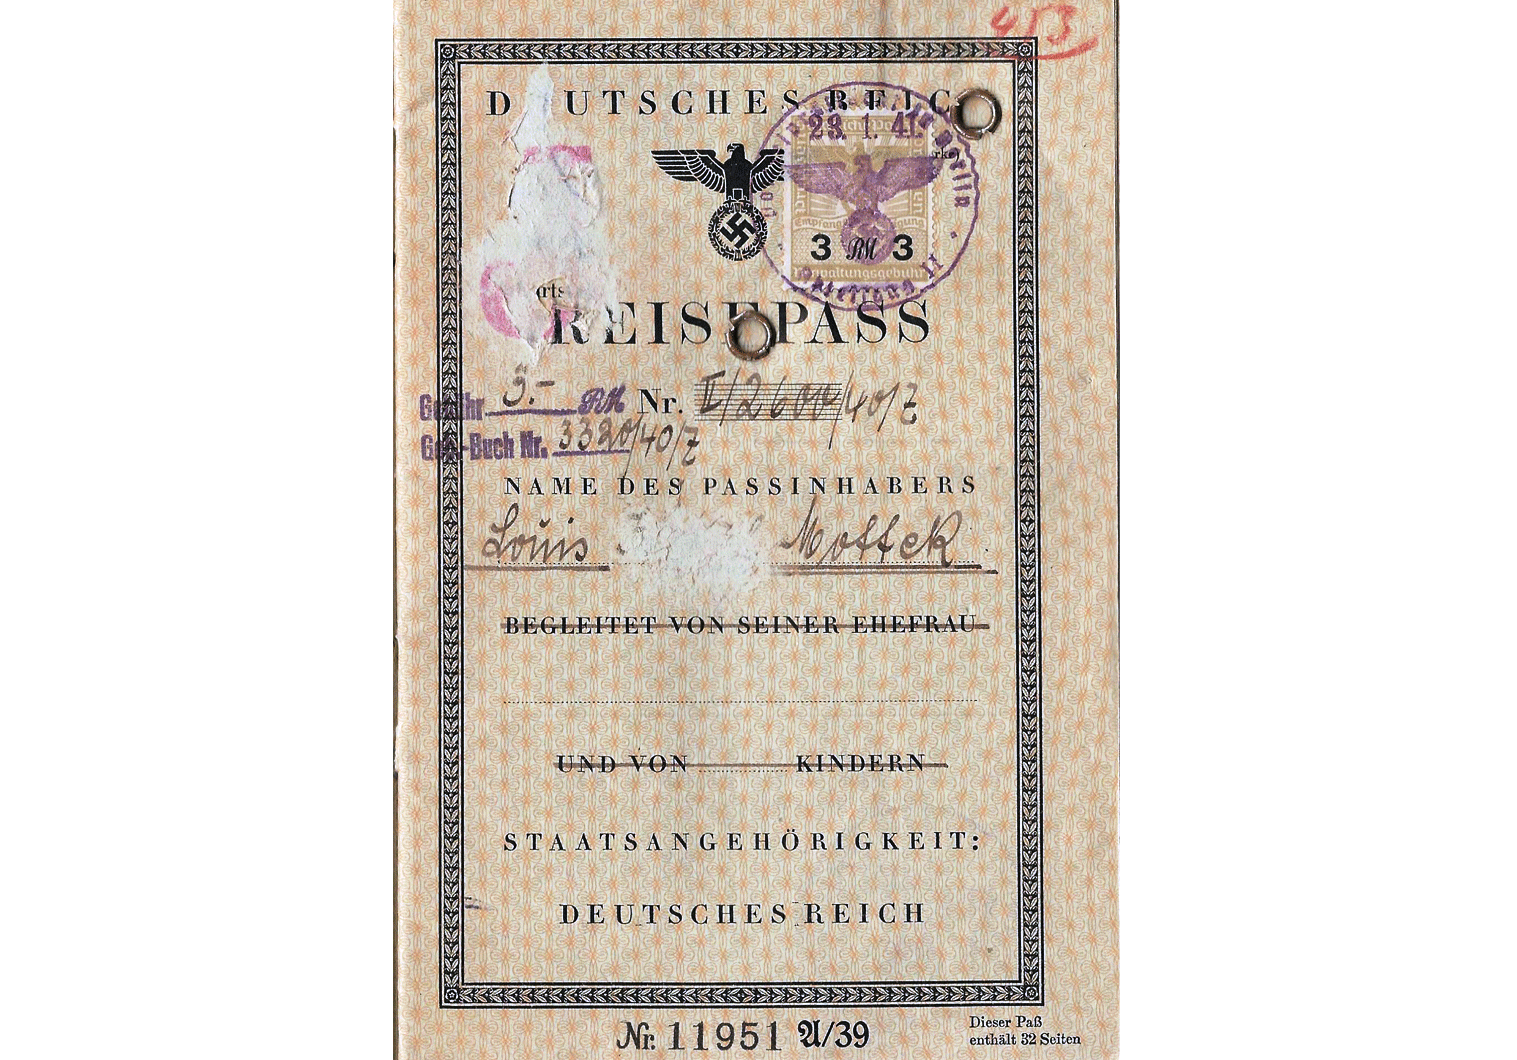 J stamped German passport from 1941